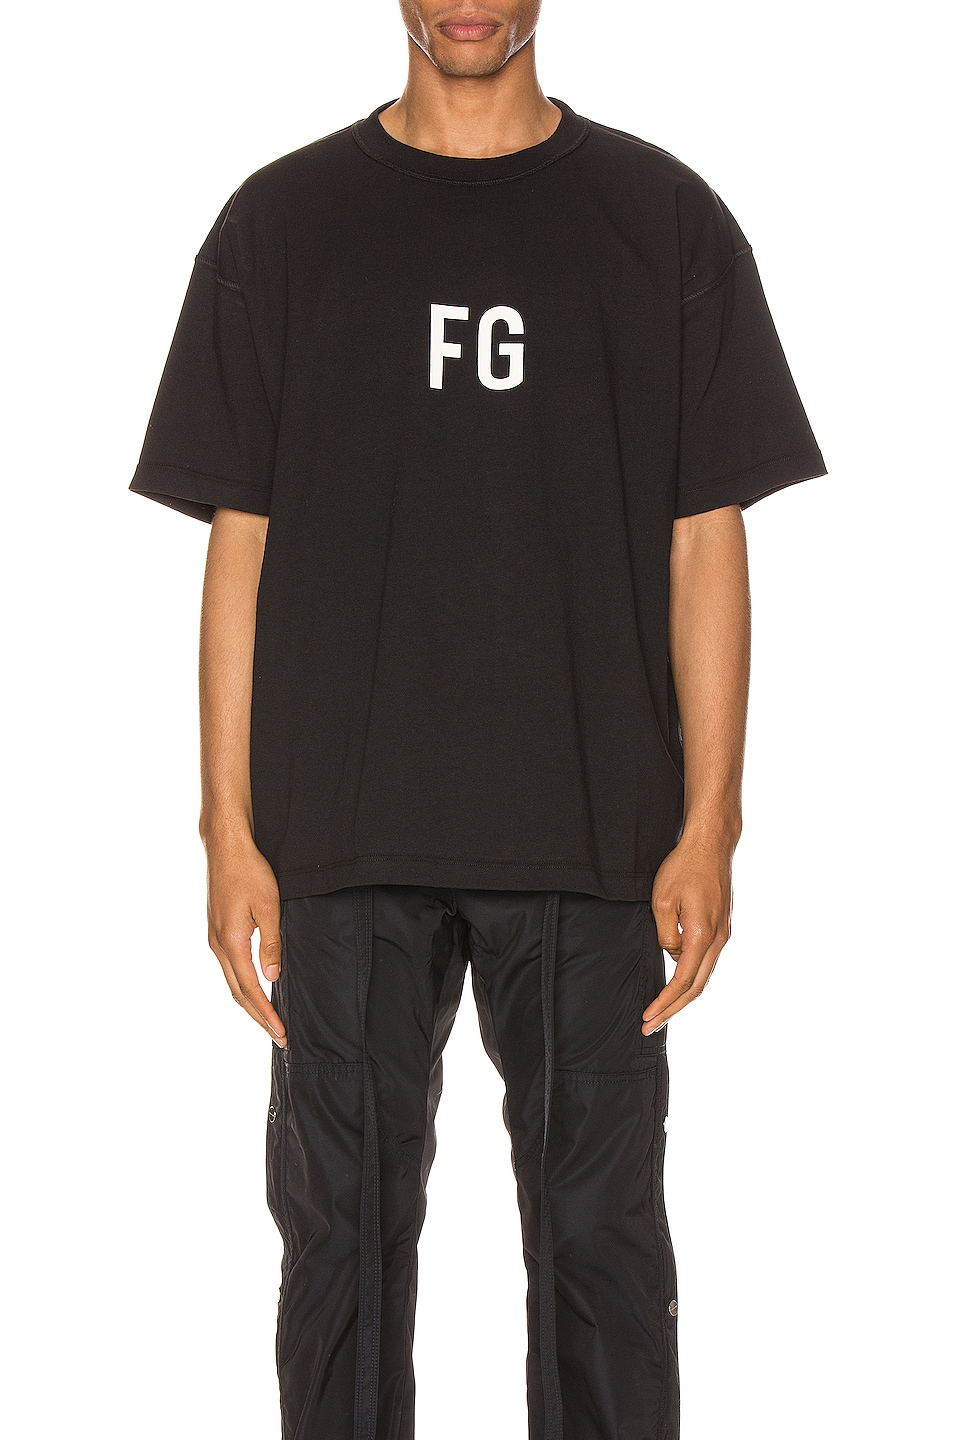 Image 1 of Fear of God Short Sleeve FG Tee in Vintage Black